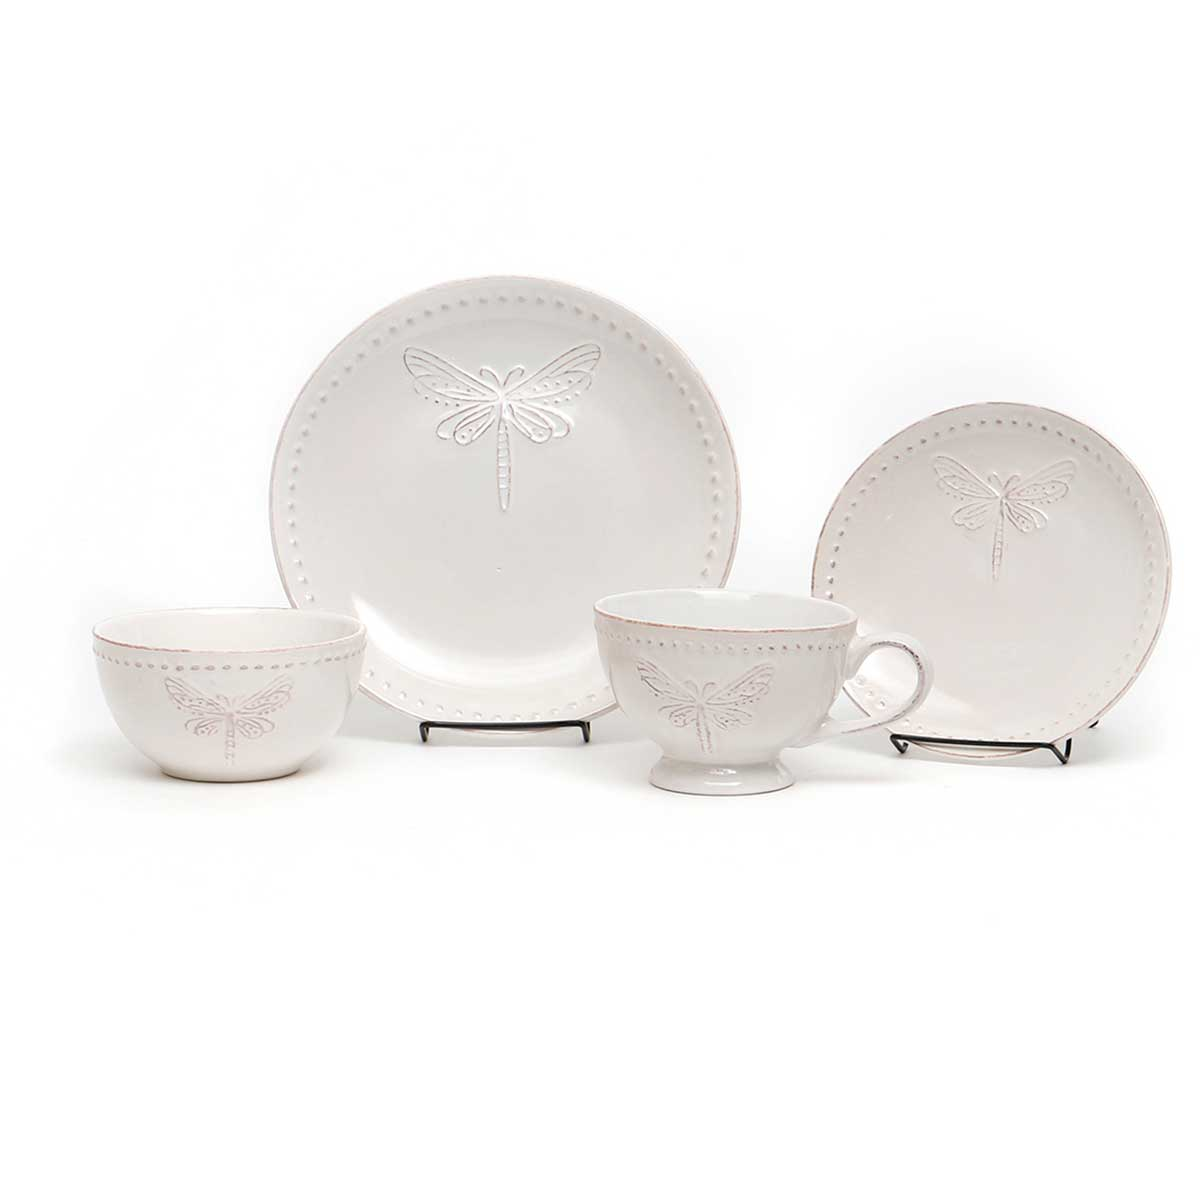 DRAGONFLY DISH 4-PIECE SET